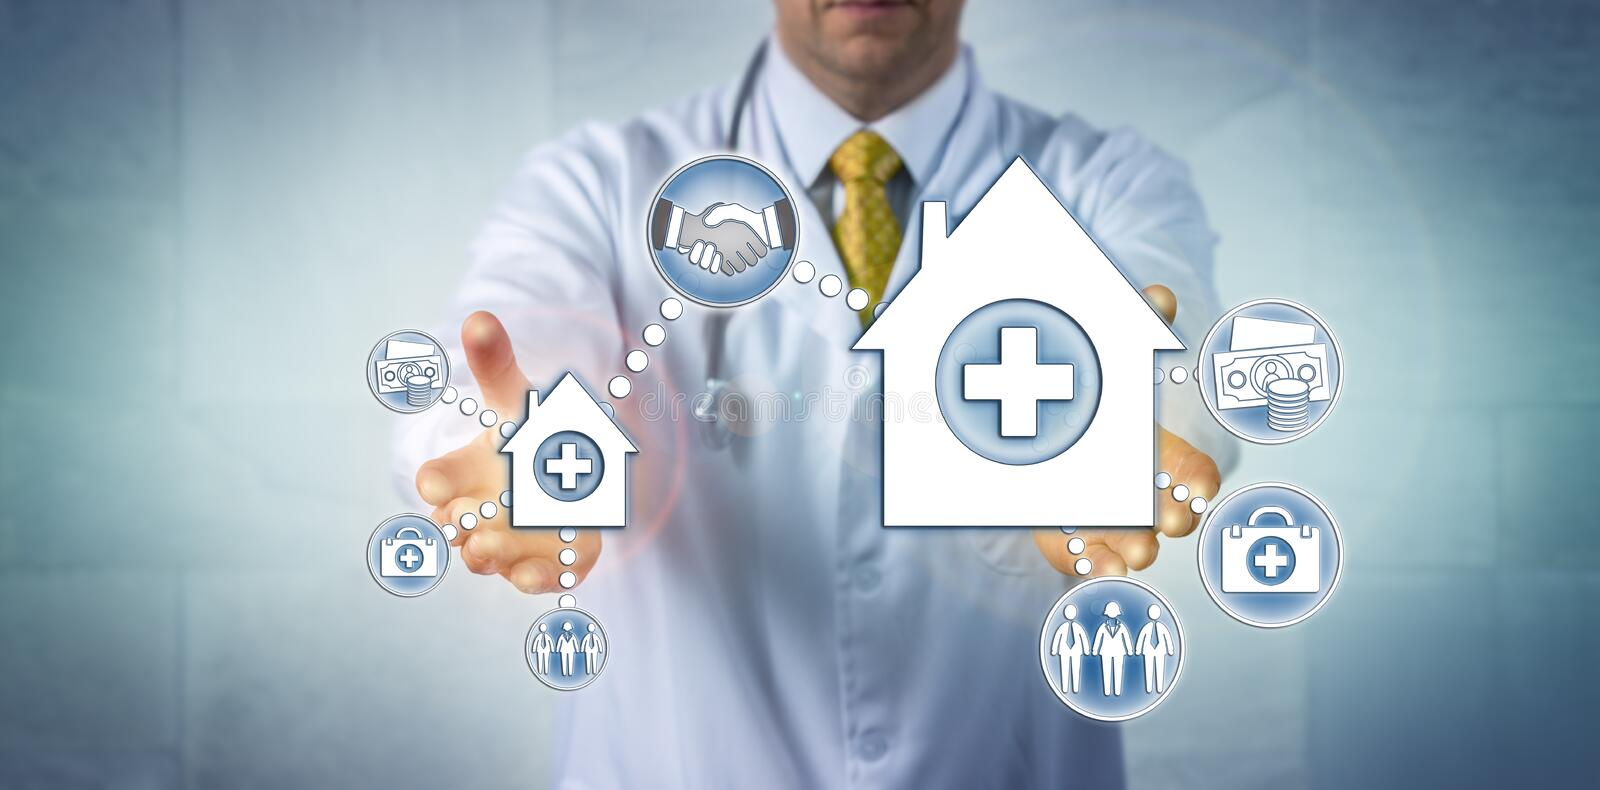 Doctor Offering Merger Of Small And Big Hospital stock photo